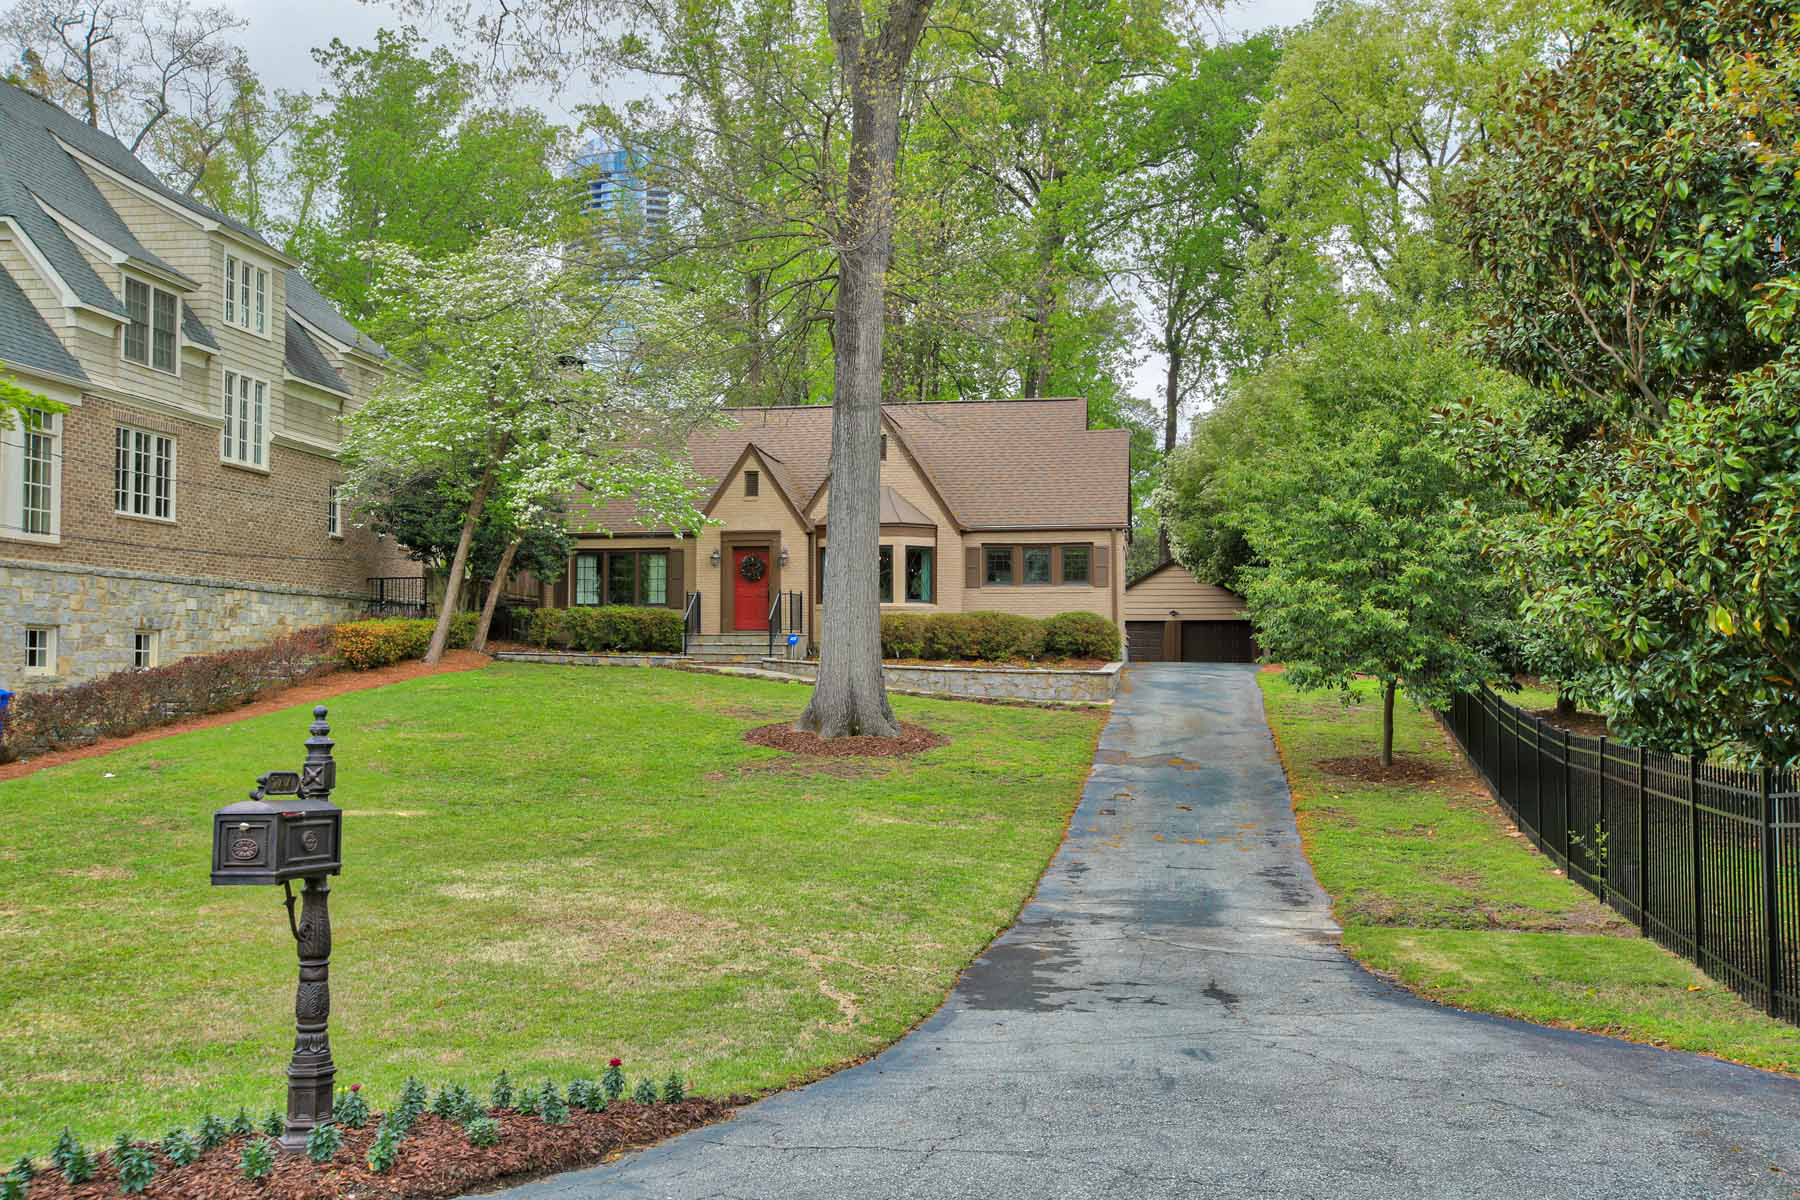 Single Family Home for Rent at Renovated Peachtree Park Bungalow 744 E Paces Ferry Road NE Atlanta, Georgia 30305 United States